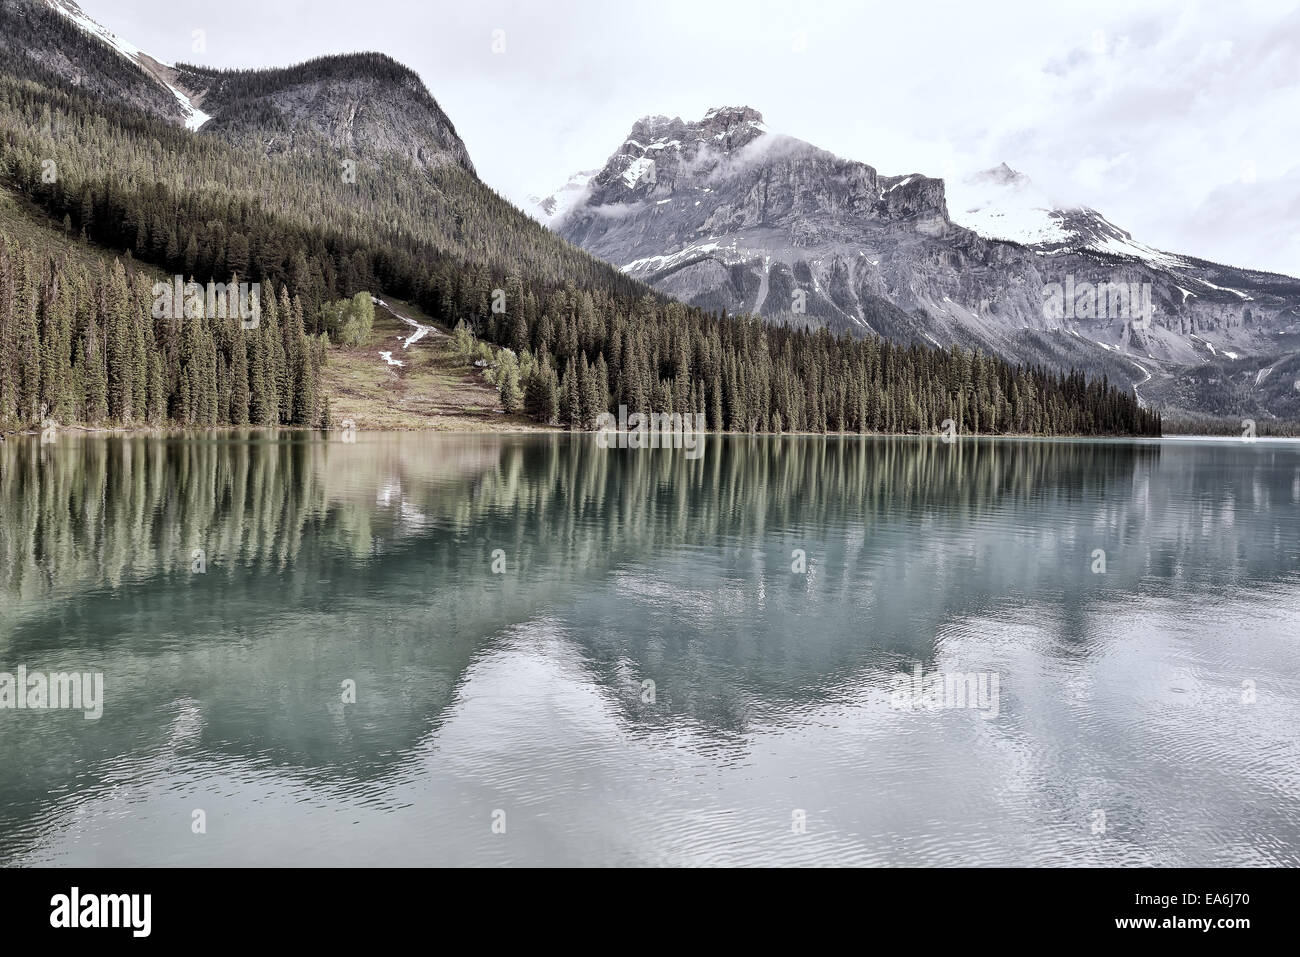 Canada, View of Emerald Lake Yoho National Park - Stock Image